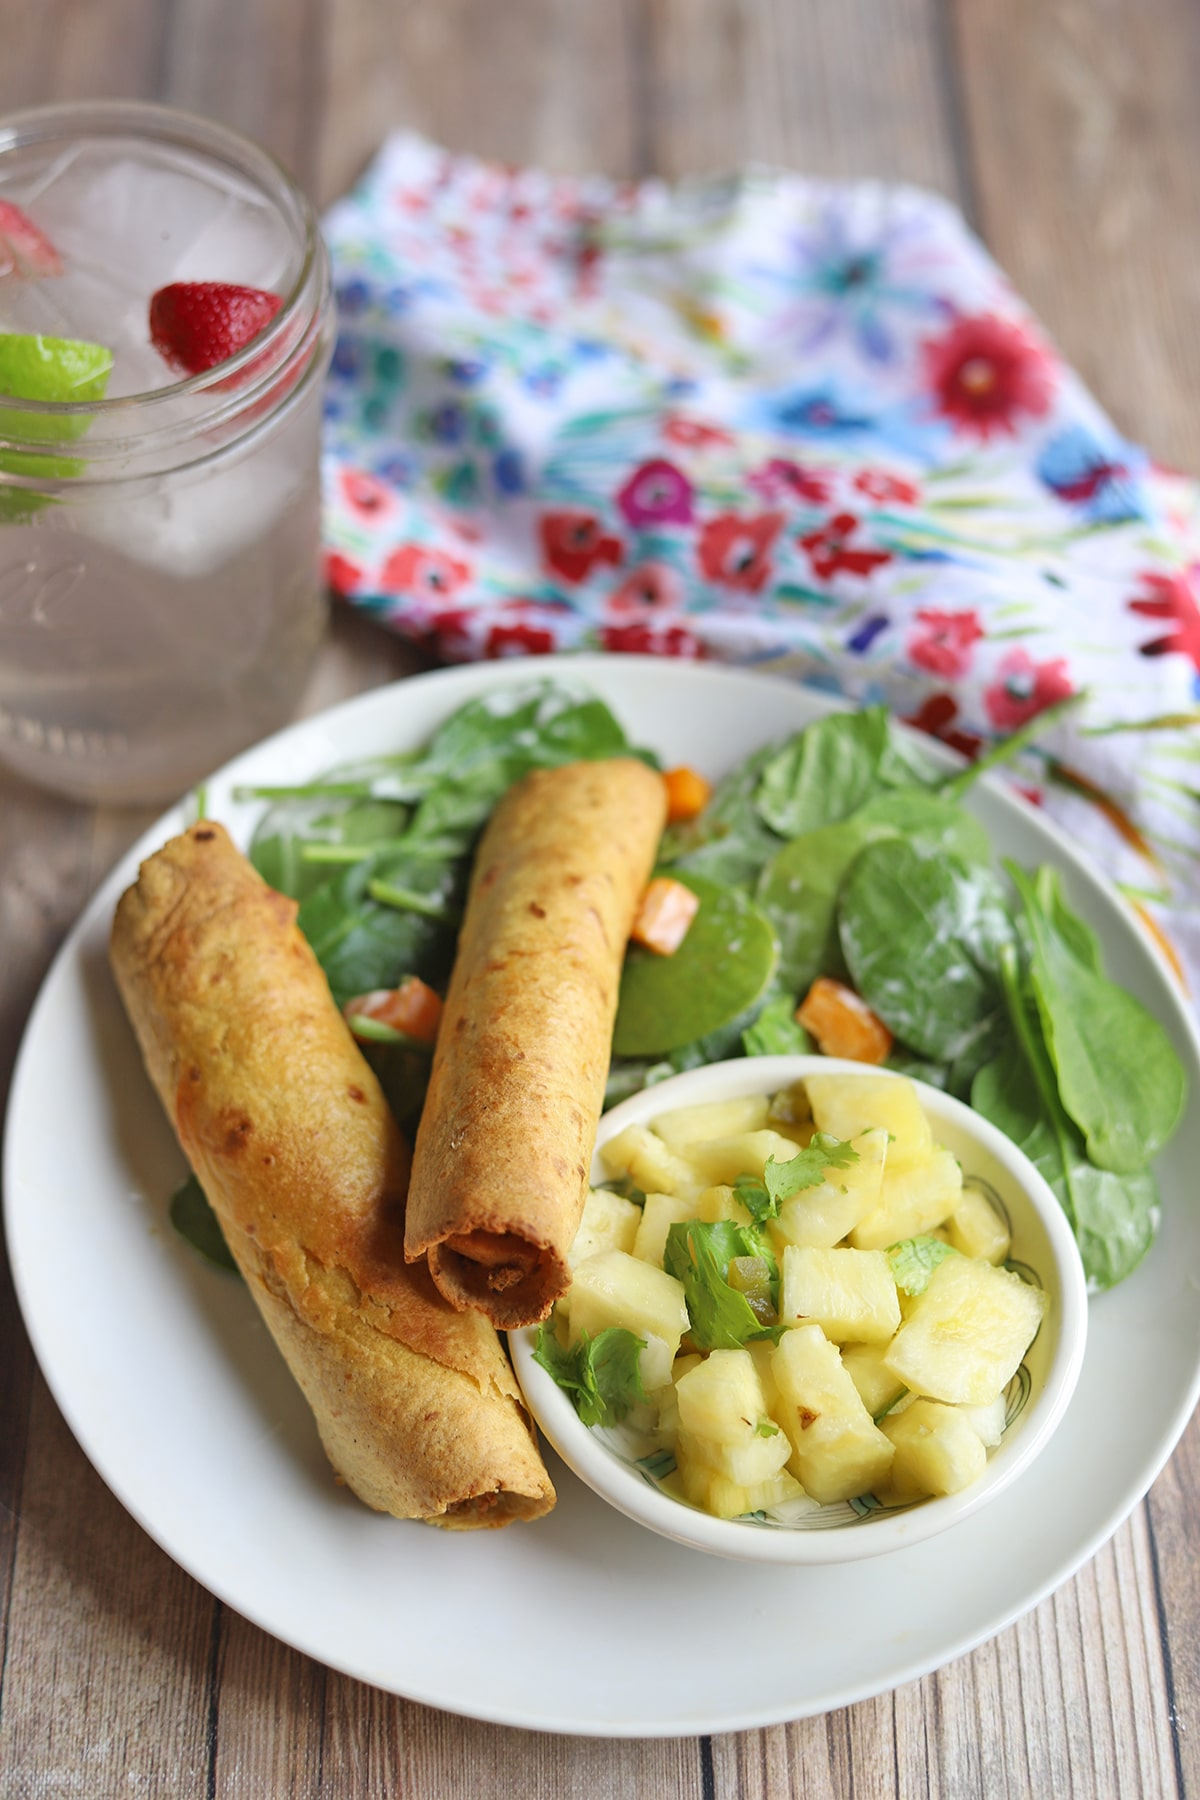 Jackfruit taquitos on plate with spinach salad and pineapple salsa.